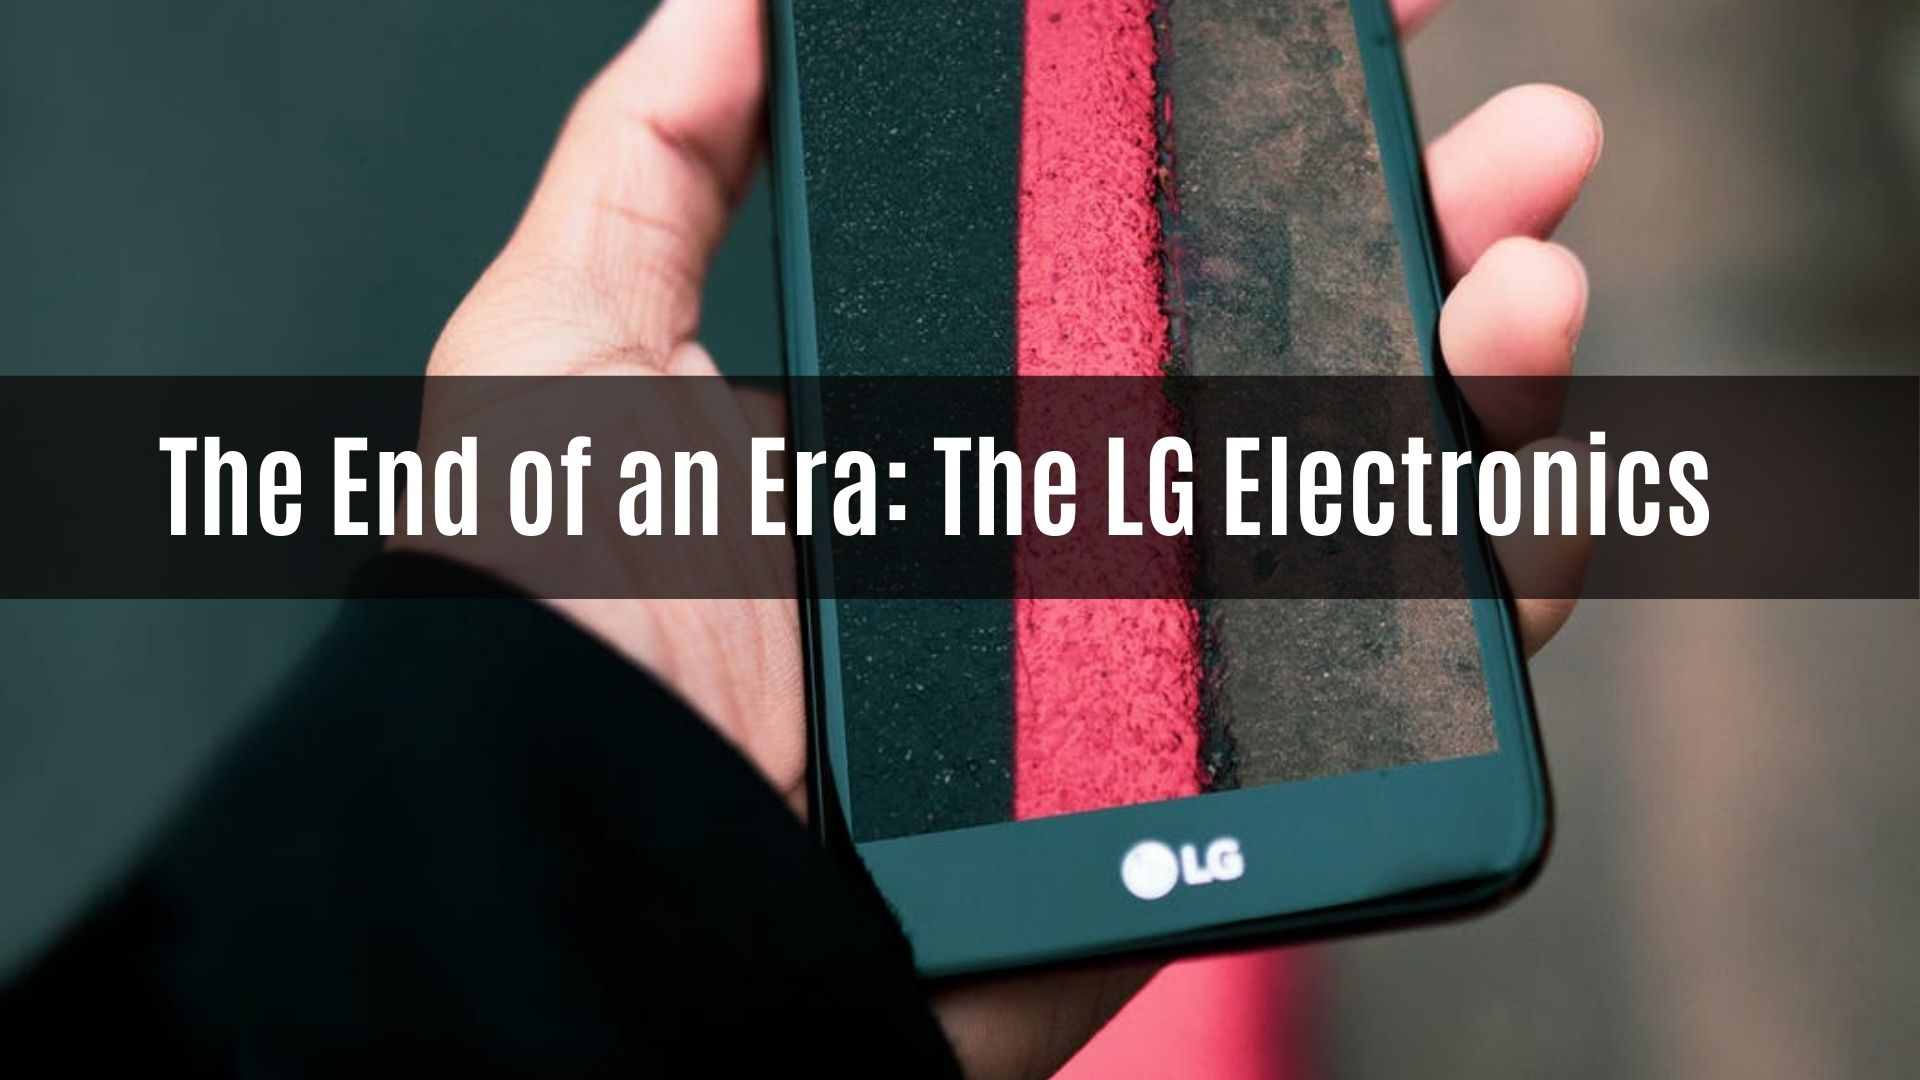 The End of an Era The LG Electronics